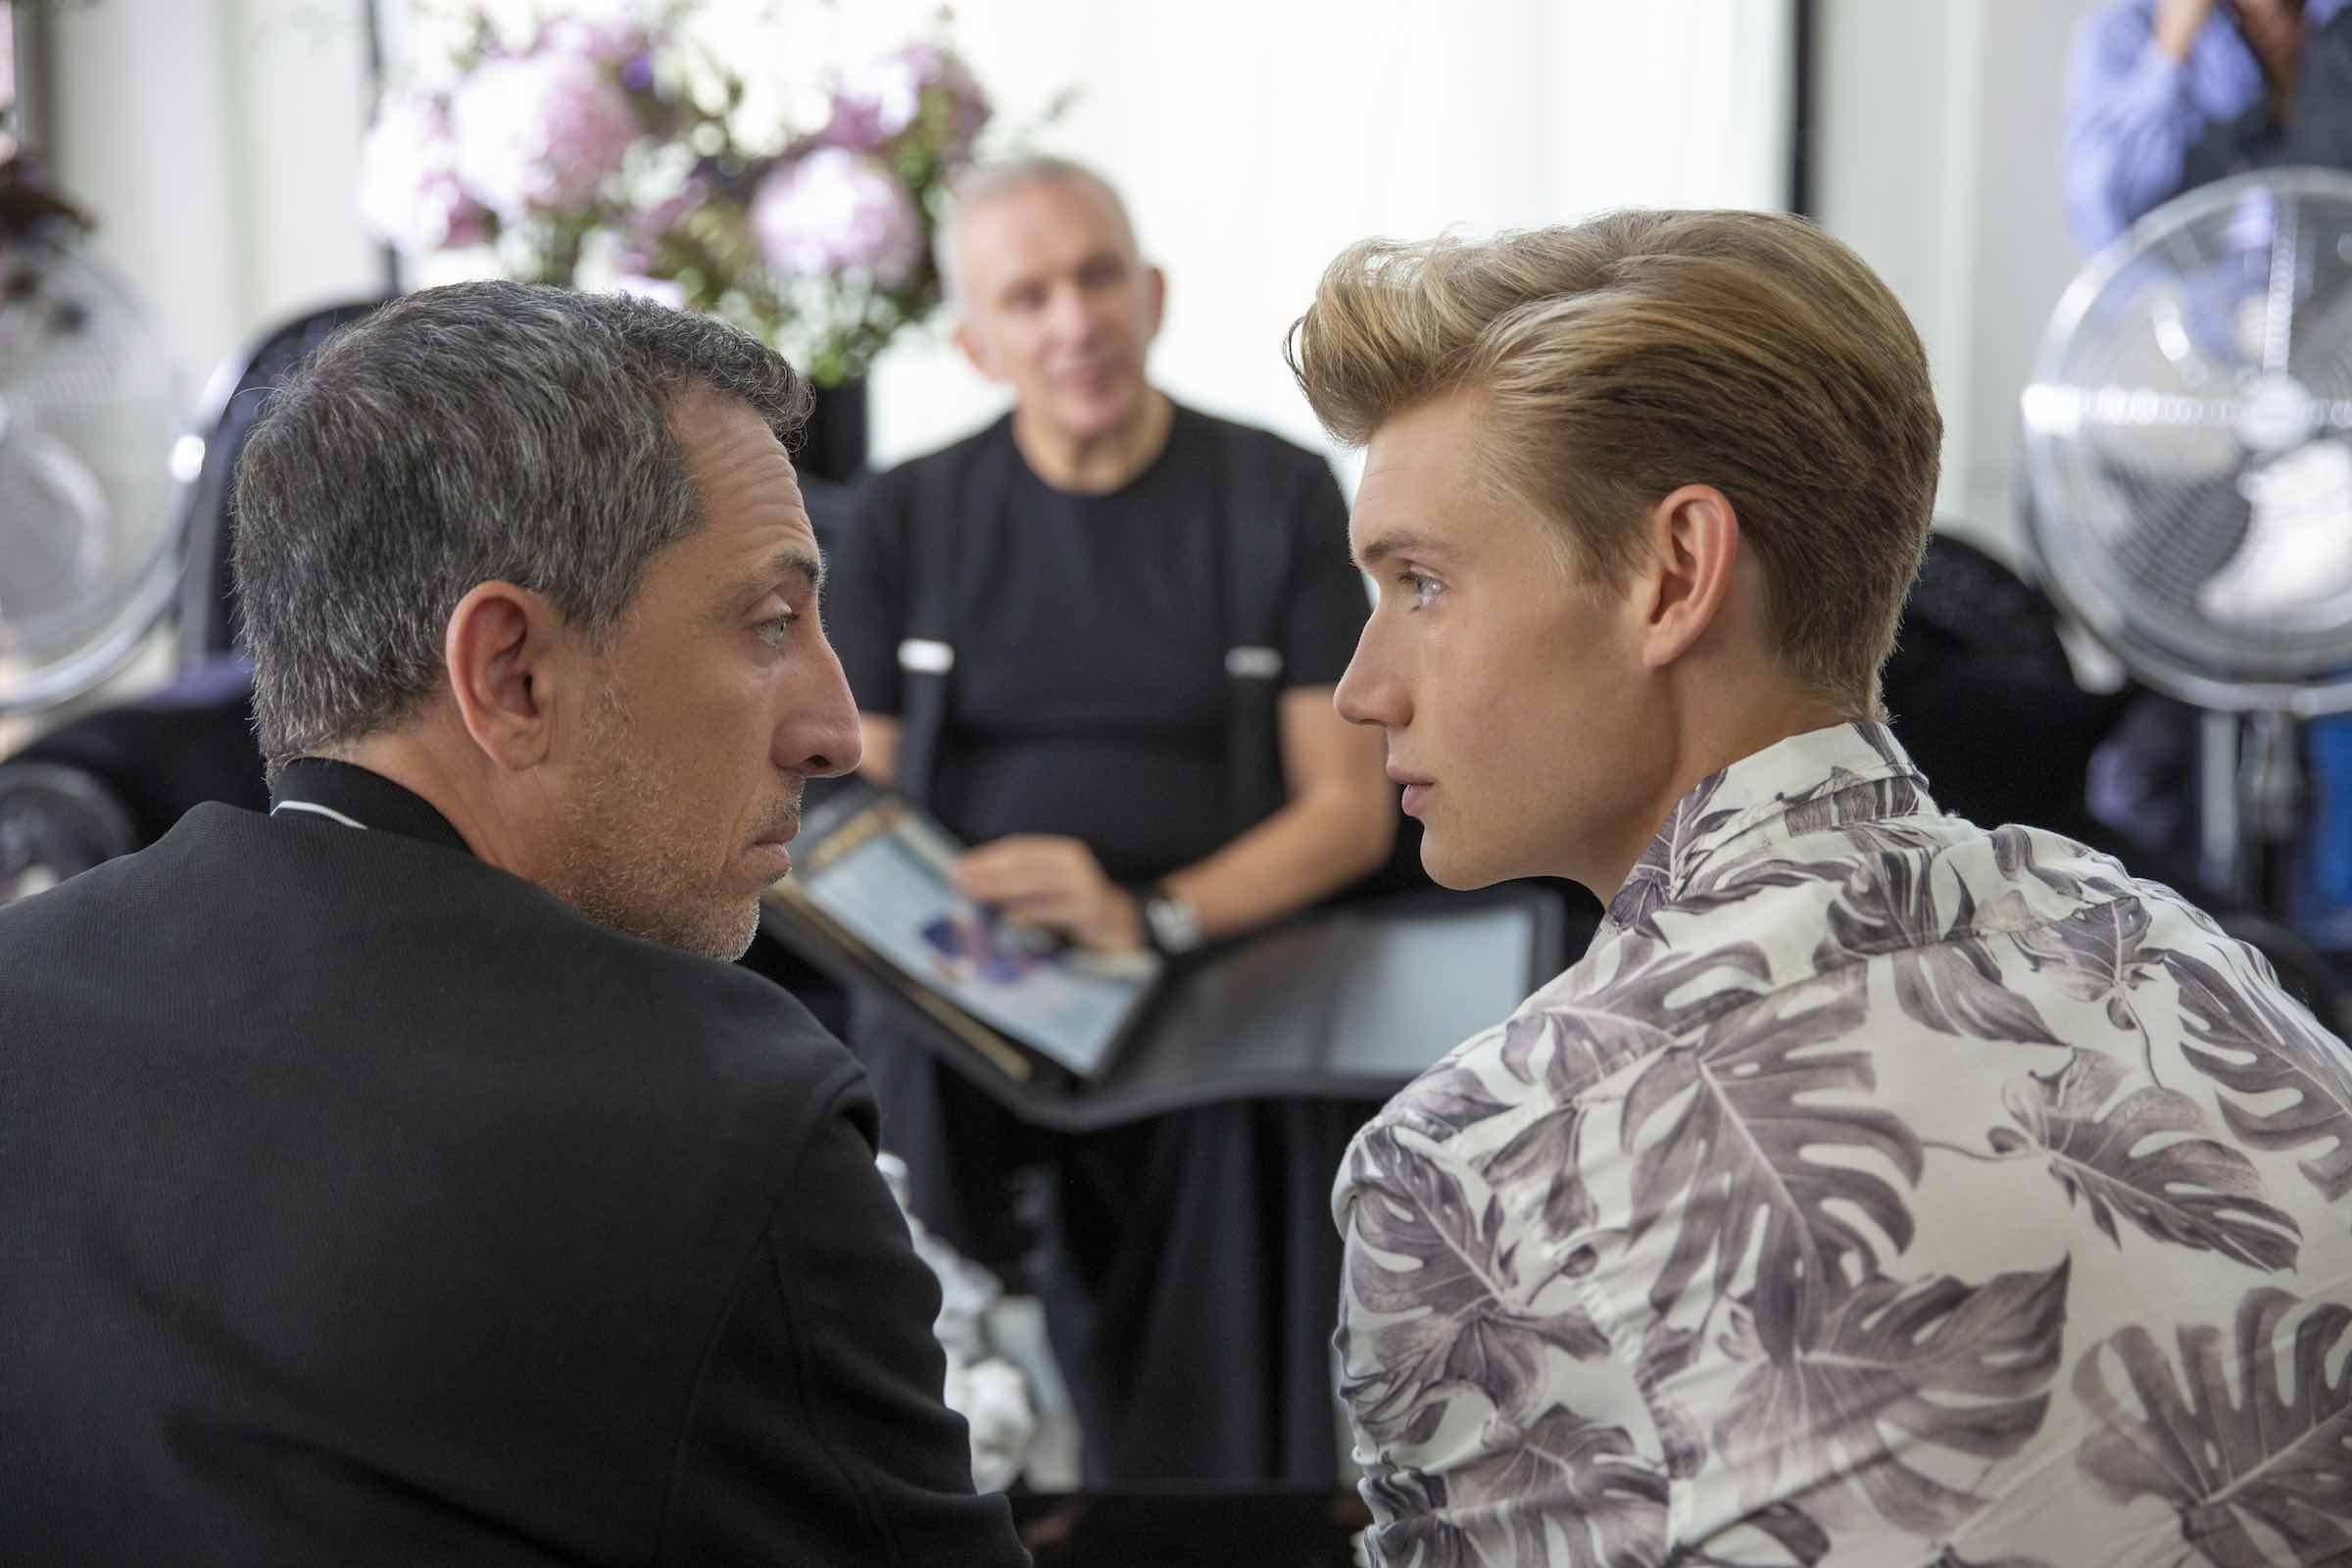 Gad is a hugely famous comedian . . . in France. He moves to LA to reconnect with his 16-year-old son, without a single celebrity perk.